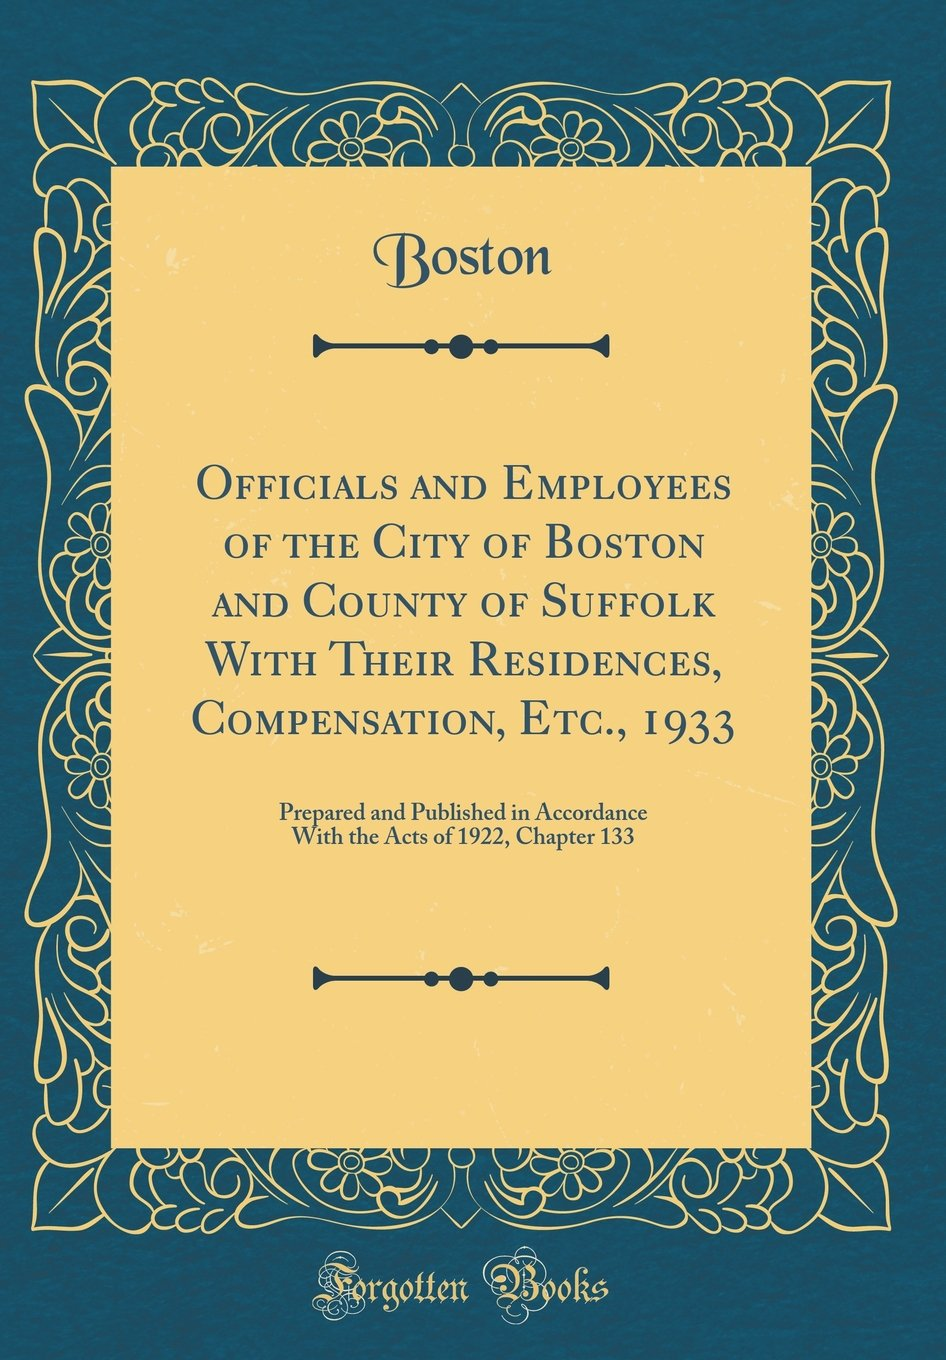 Download Officials and Employees of the City of Boston and County of Suffolk With Their Residences, Compensation, Etc., 1933: Prepared and Published in ... Acts of 1922, Chapter 133 (Classic Reprint) pdf epub